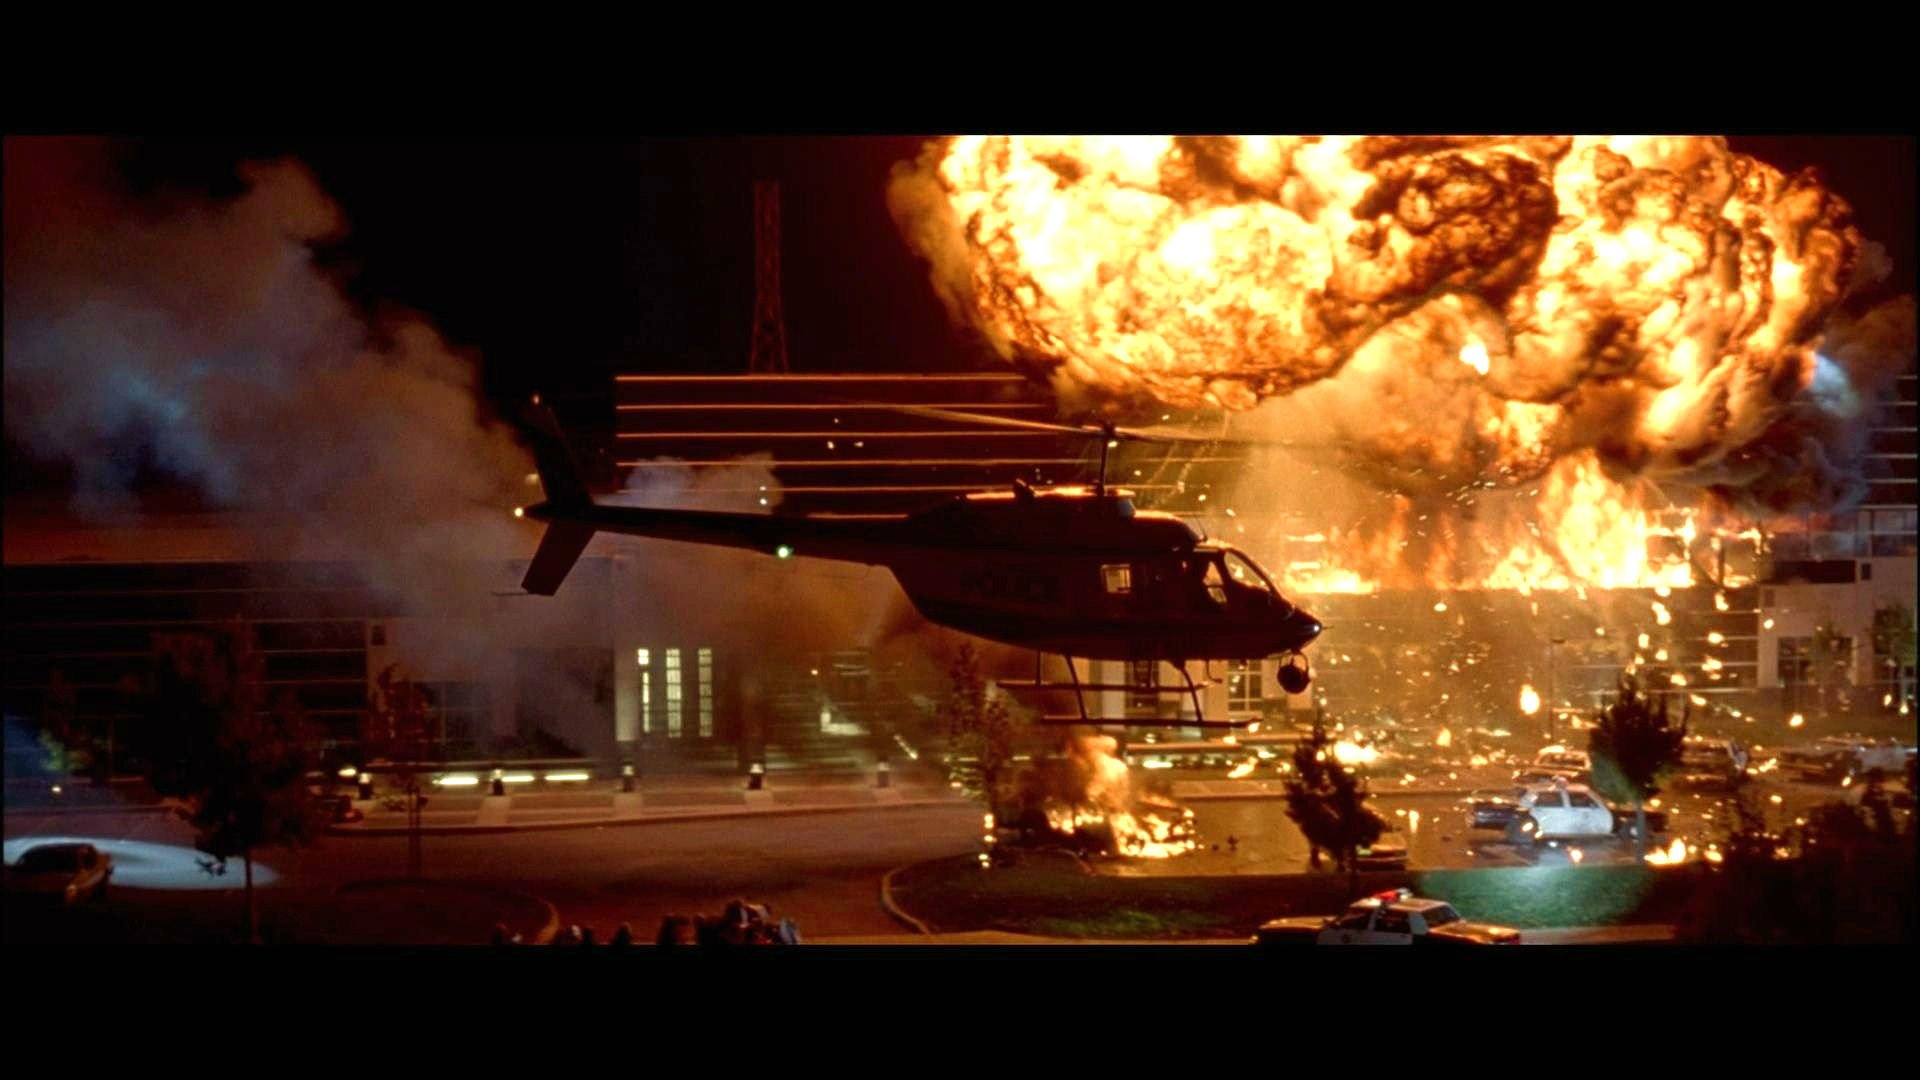 terminator Sci fi Action Movie Film 59 Wallpapers HD 1920x1080